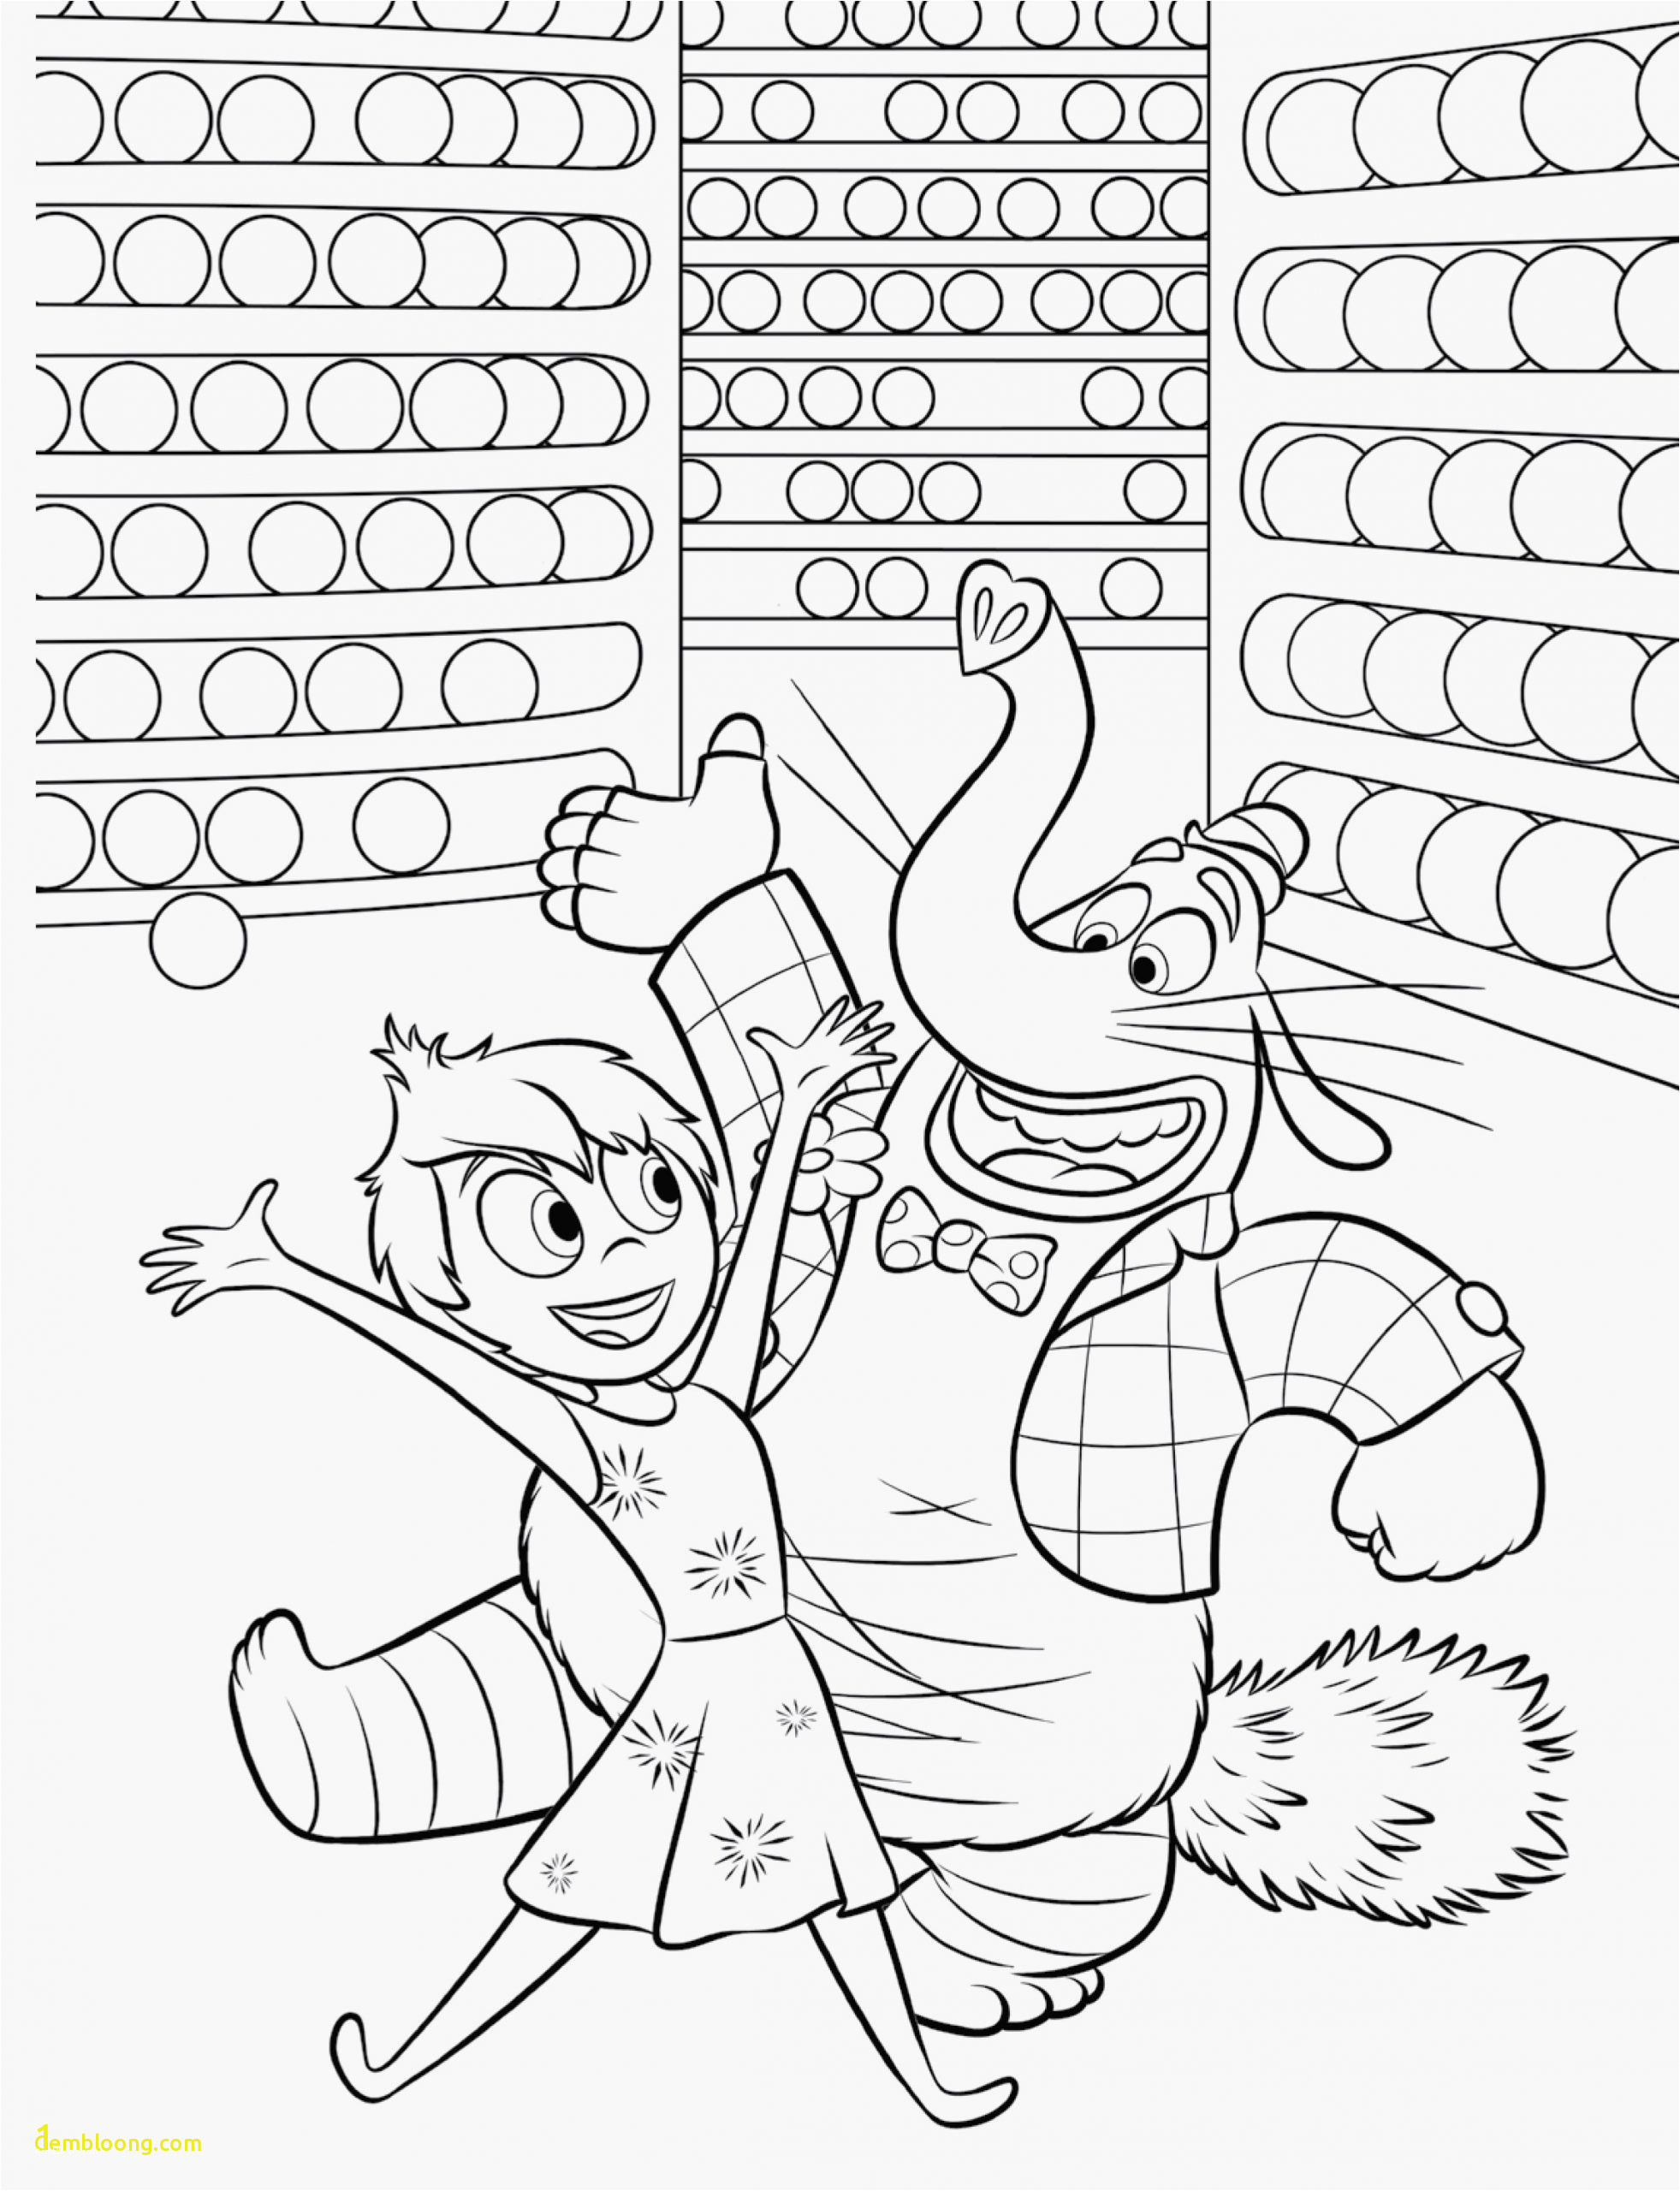 coloring activities for 4 year olds unique coloring pages coloring pages for 10 year olds coloring of coloring activities for 4 year olds